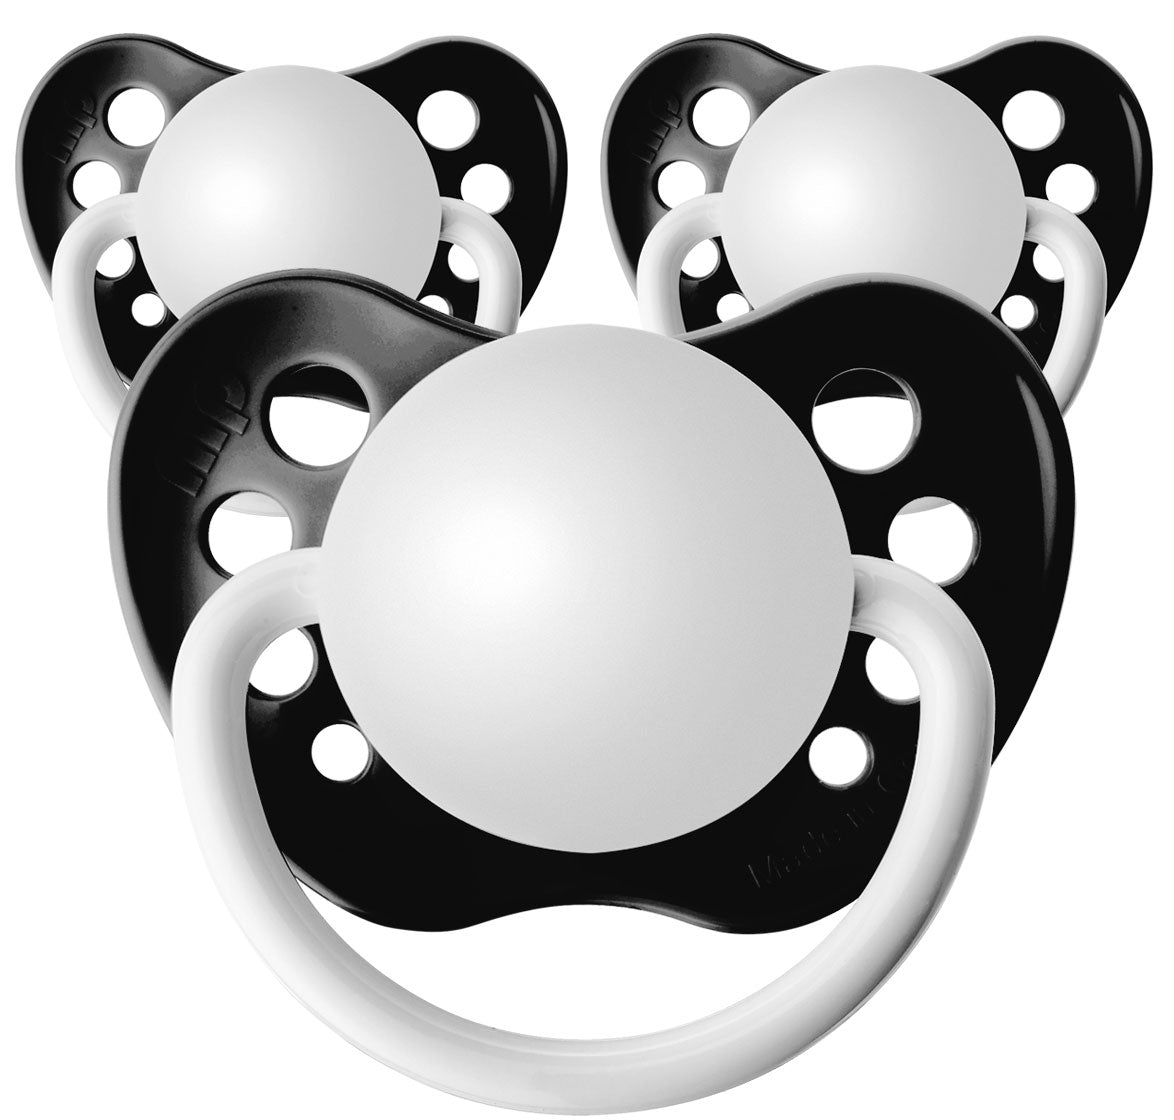 Black Personalized Pacifiers 3 Pack - Caveat Brush (English) / 0-6 M